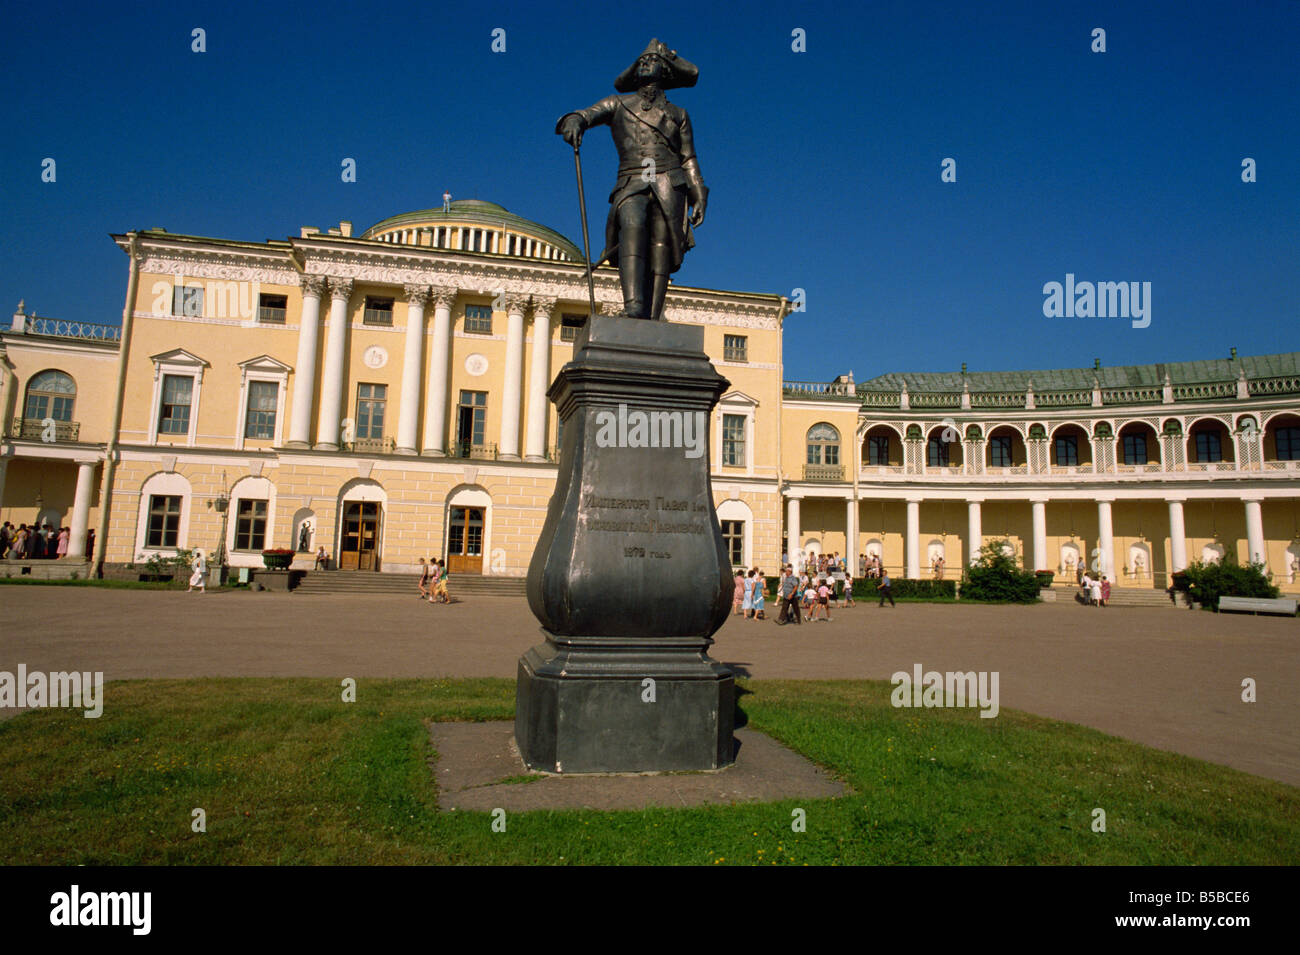 Grand Palace dating from between 1782 and 1786 architectur Cameron Pavlovsk Russia Europe - Stock Image